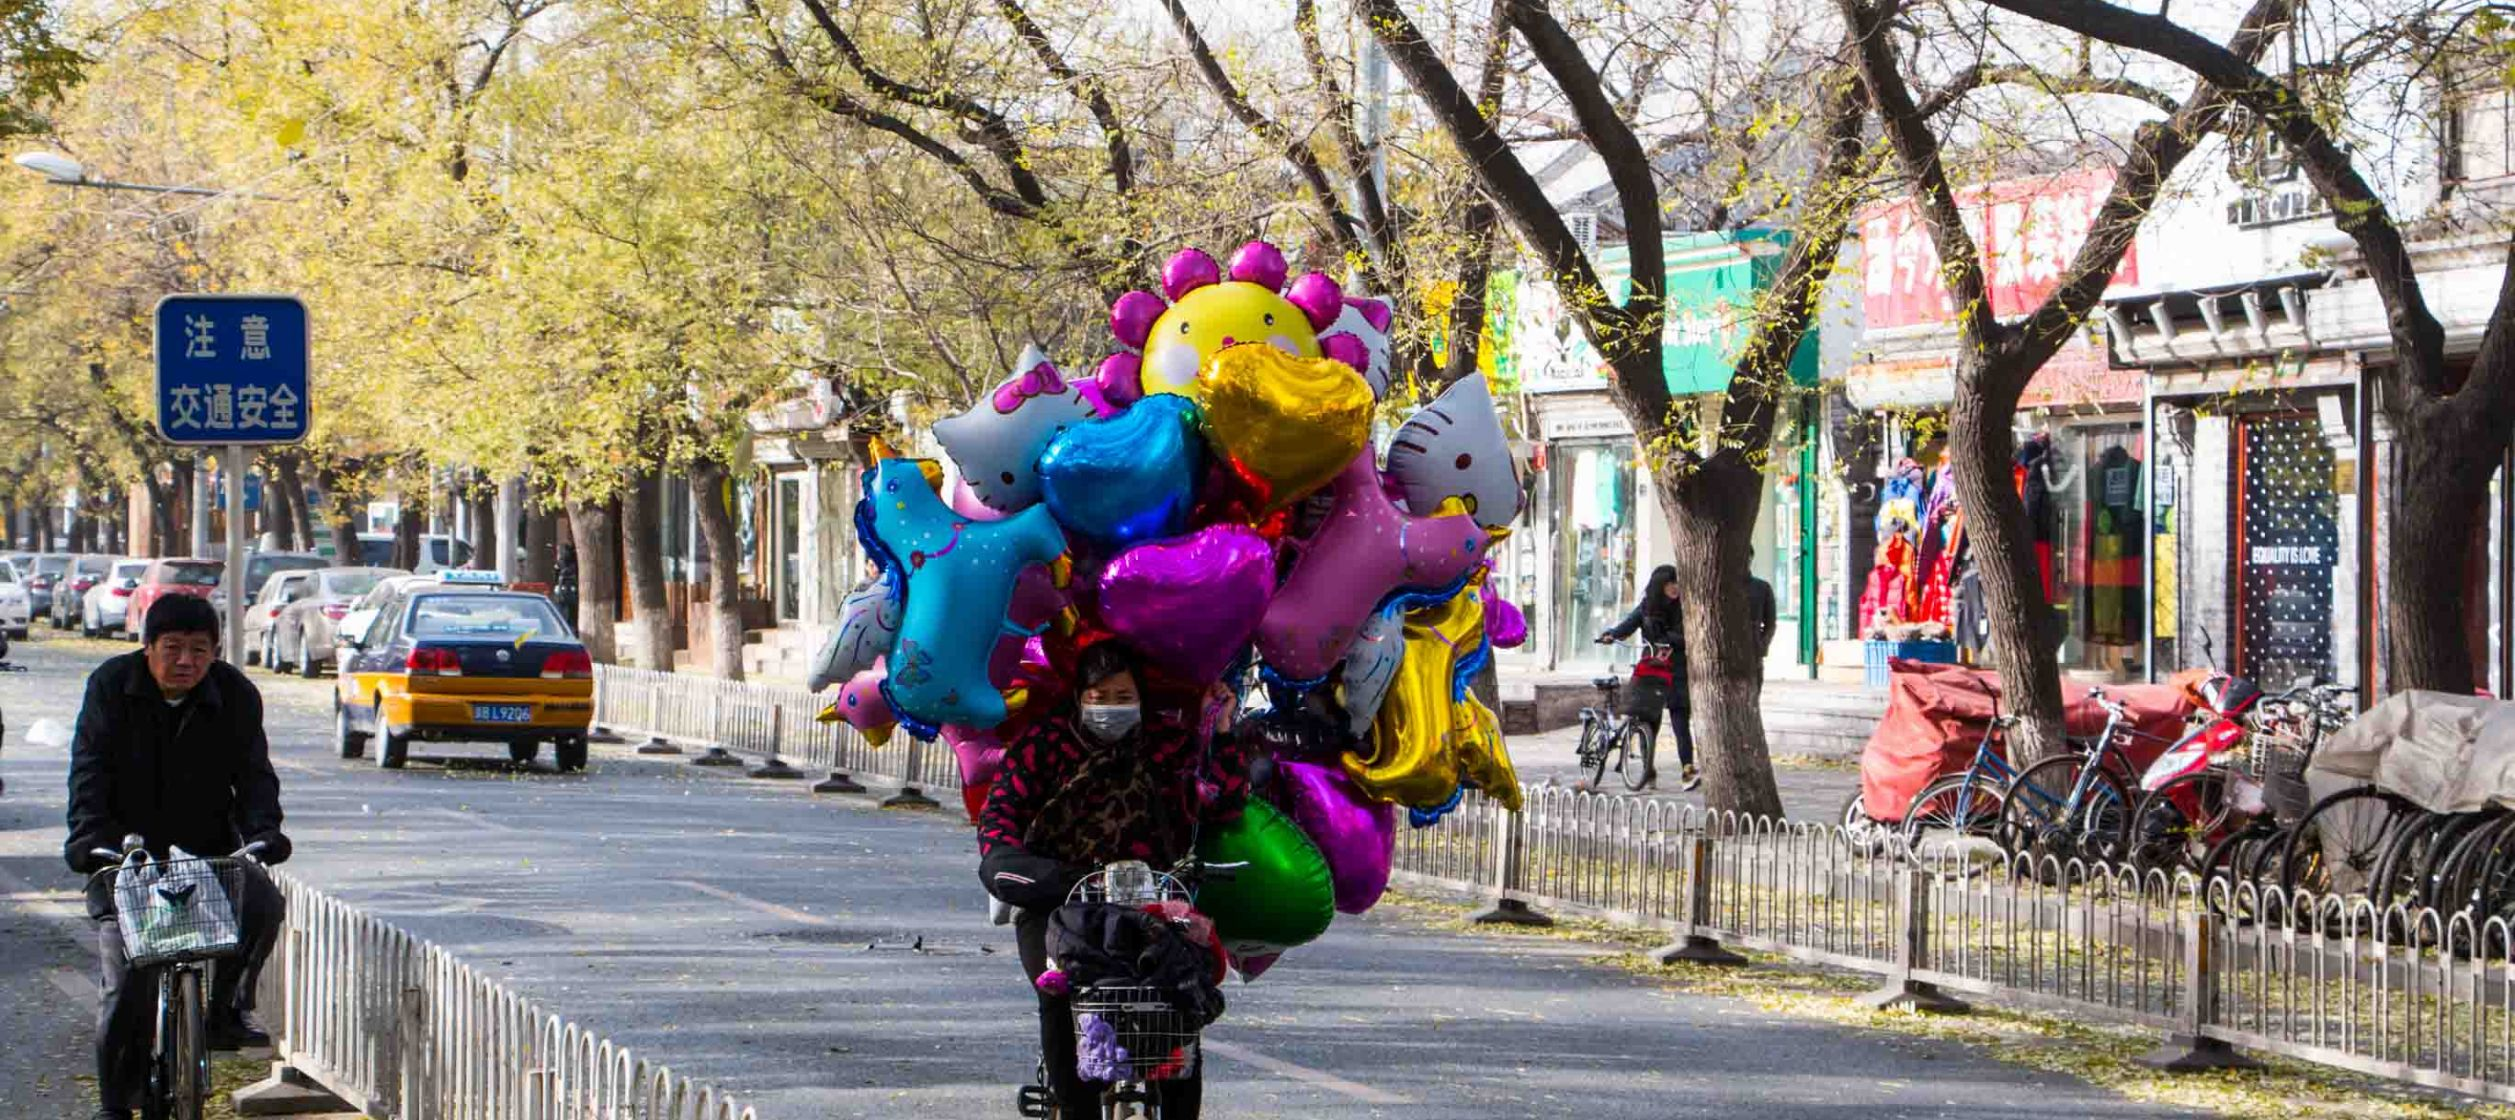 Man carrying balloons